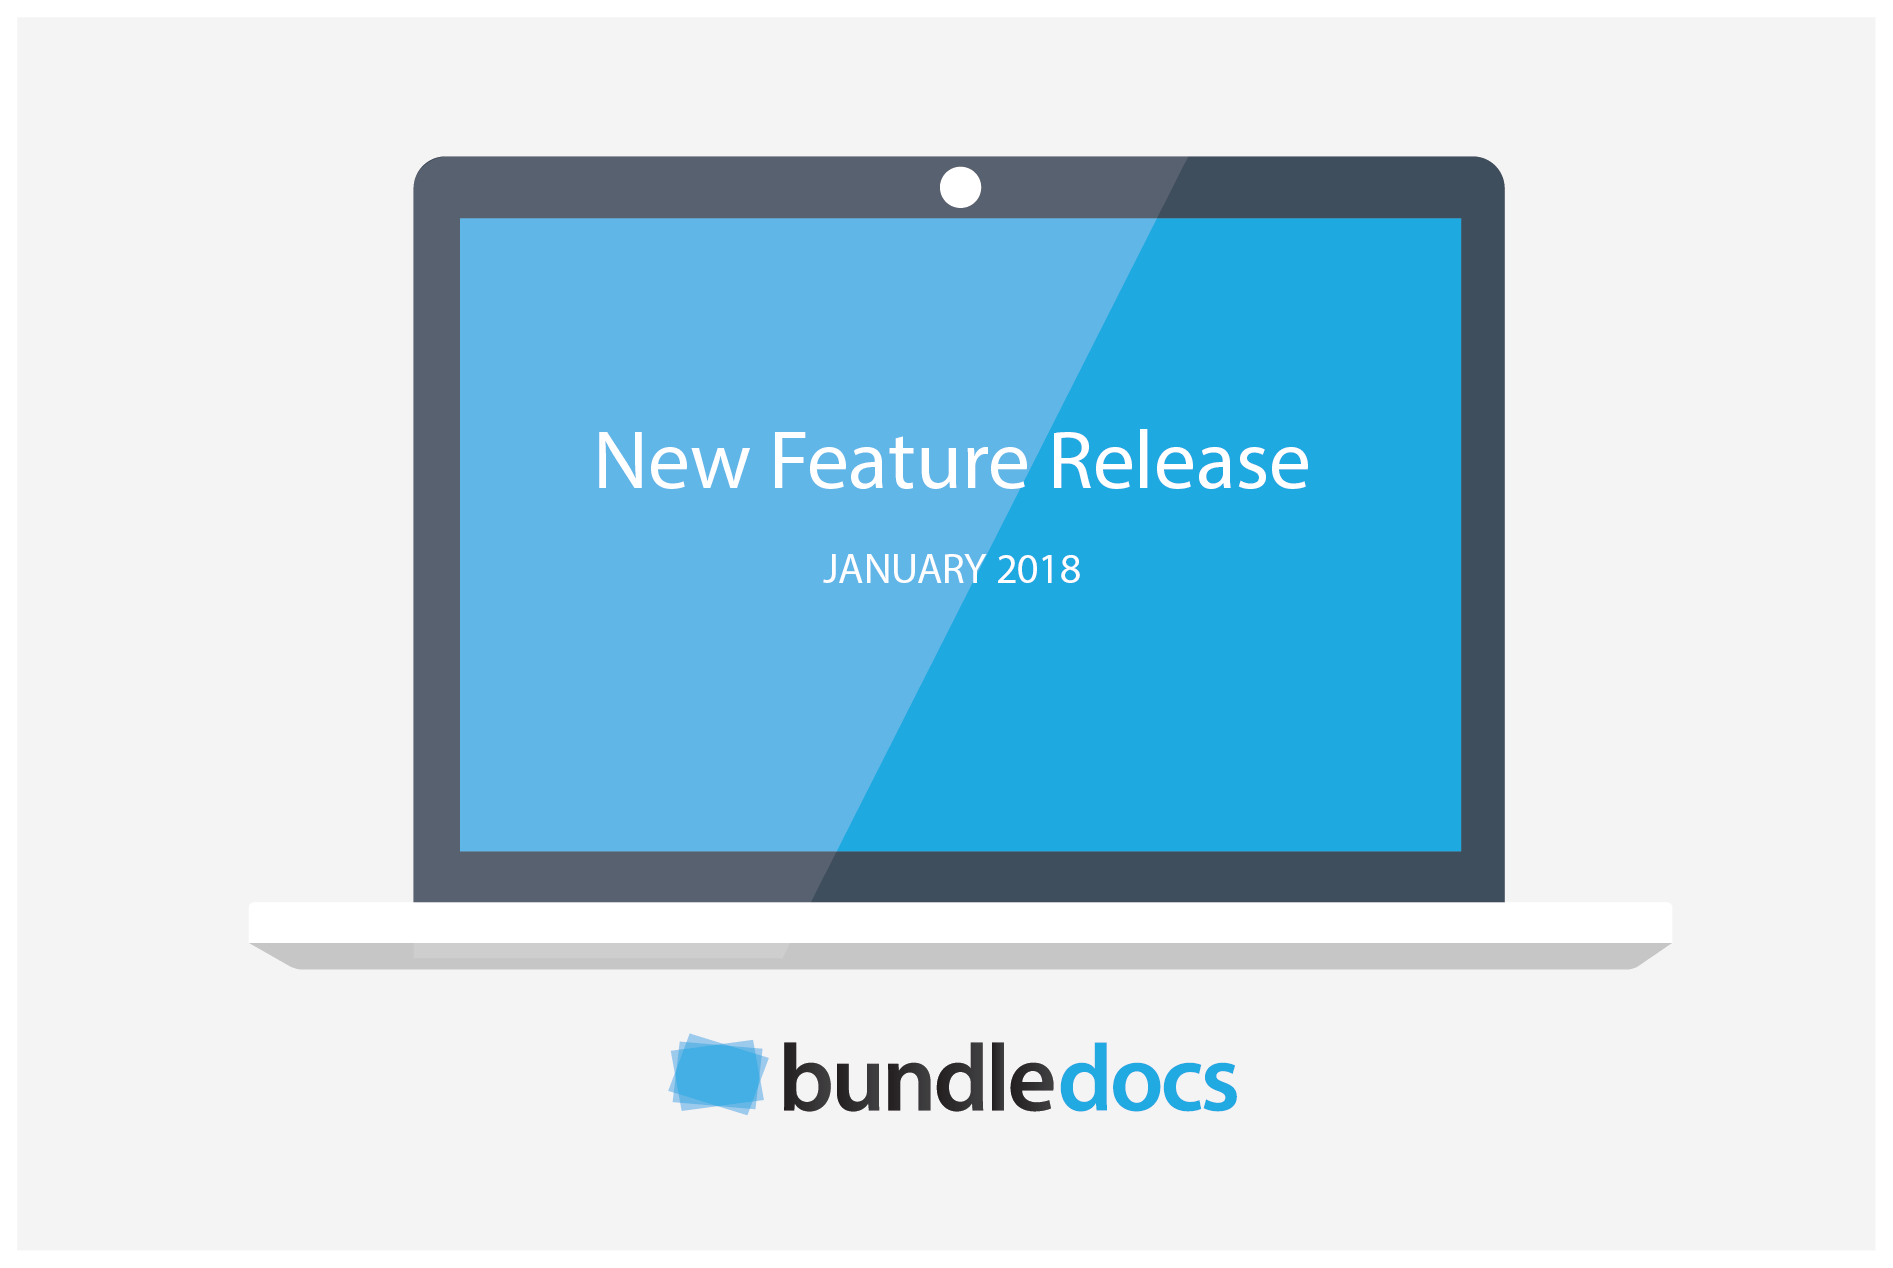 Bundledocs_New_Feature_Release_January_2018.png